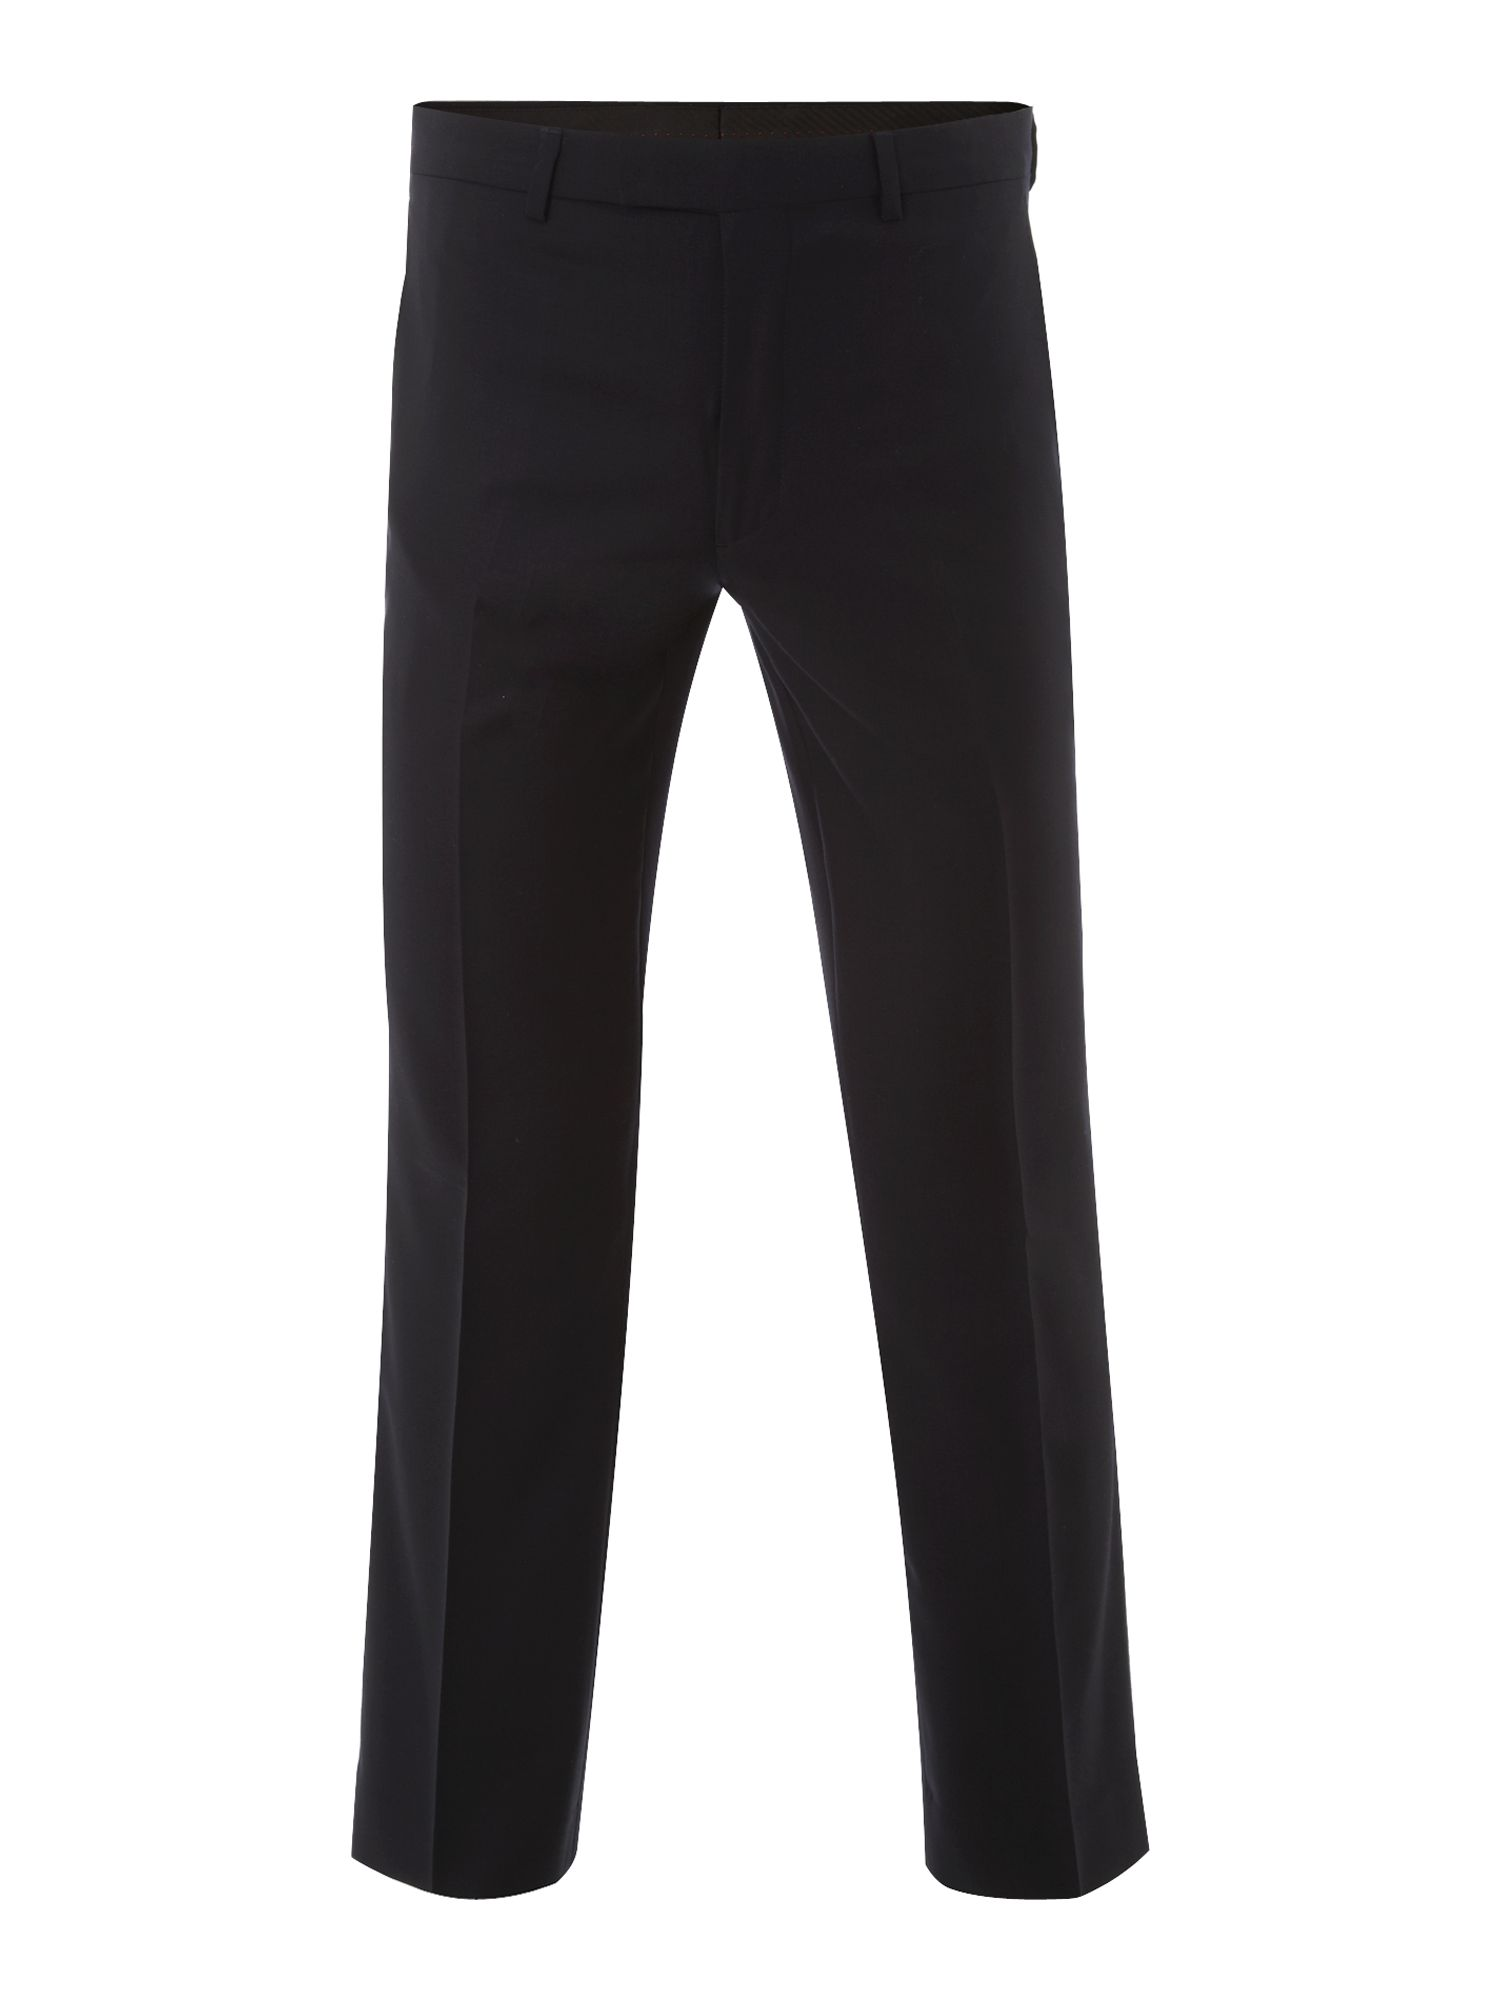 Wool twill flat front trouser